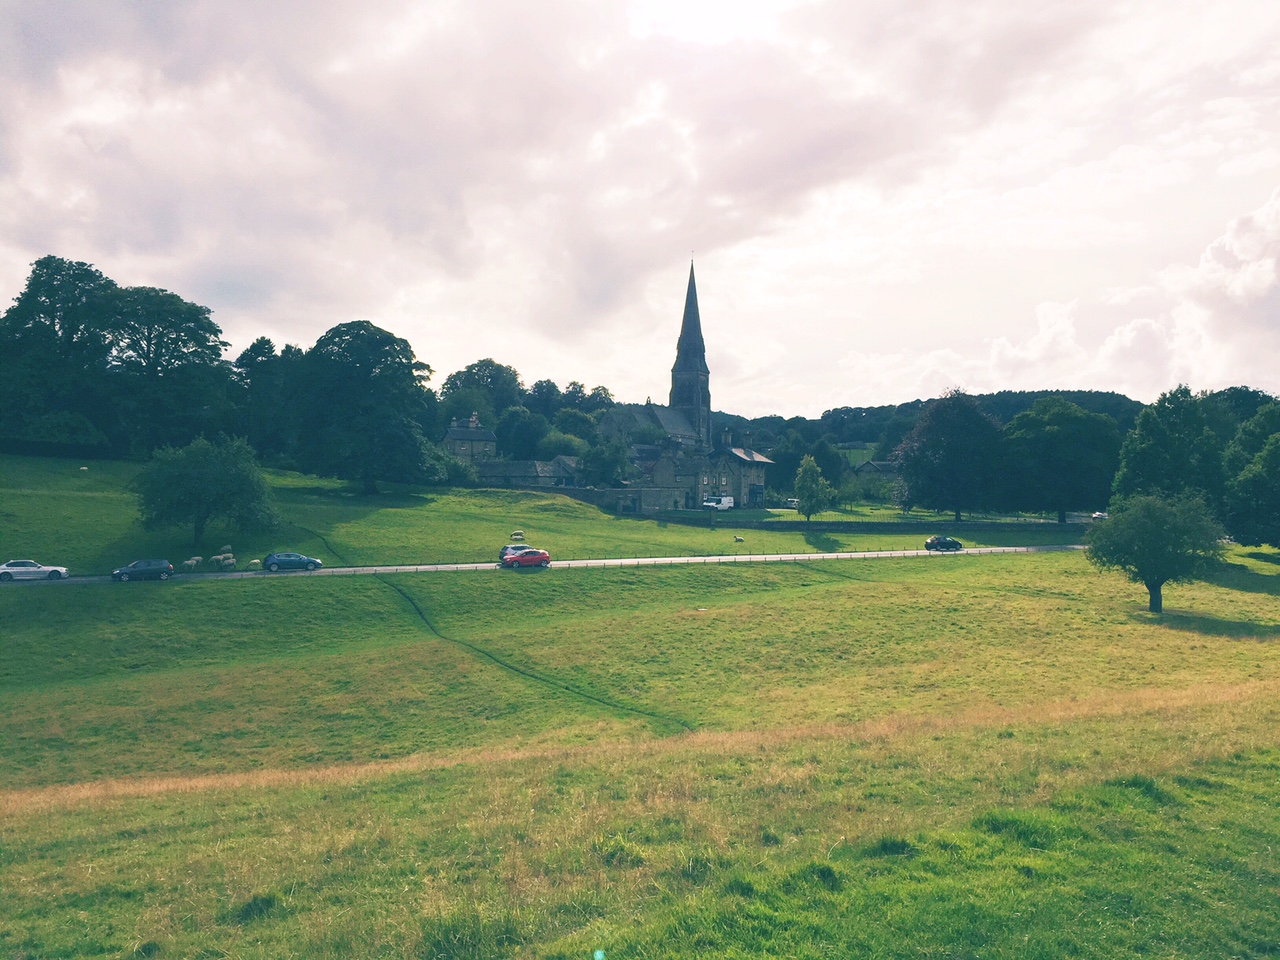 Edensor Church, Chatsworth